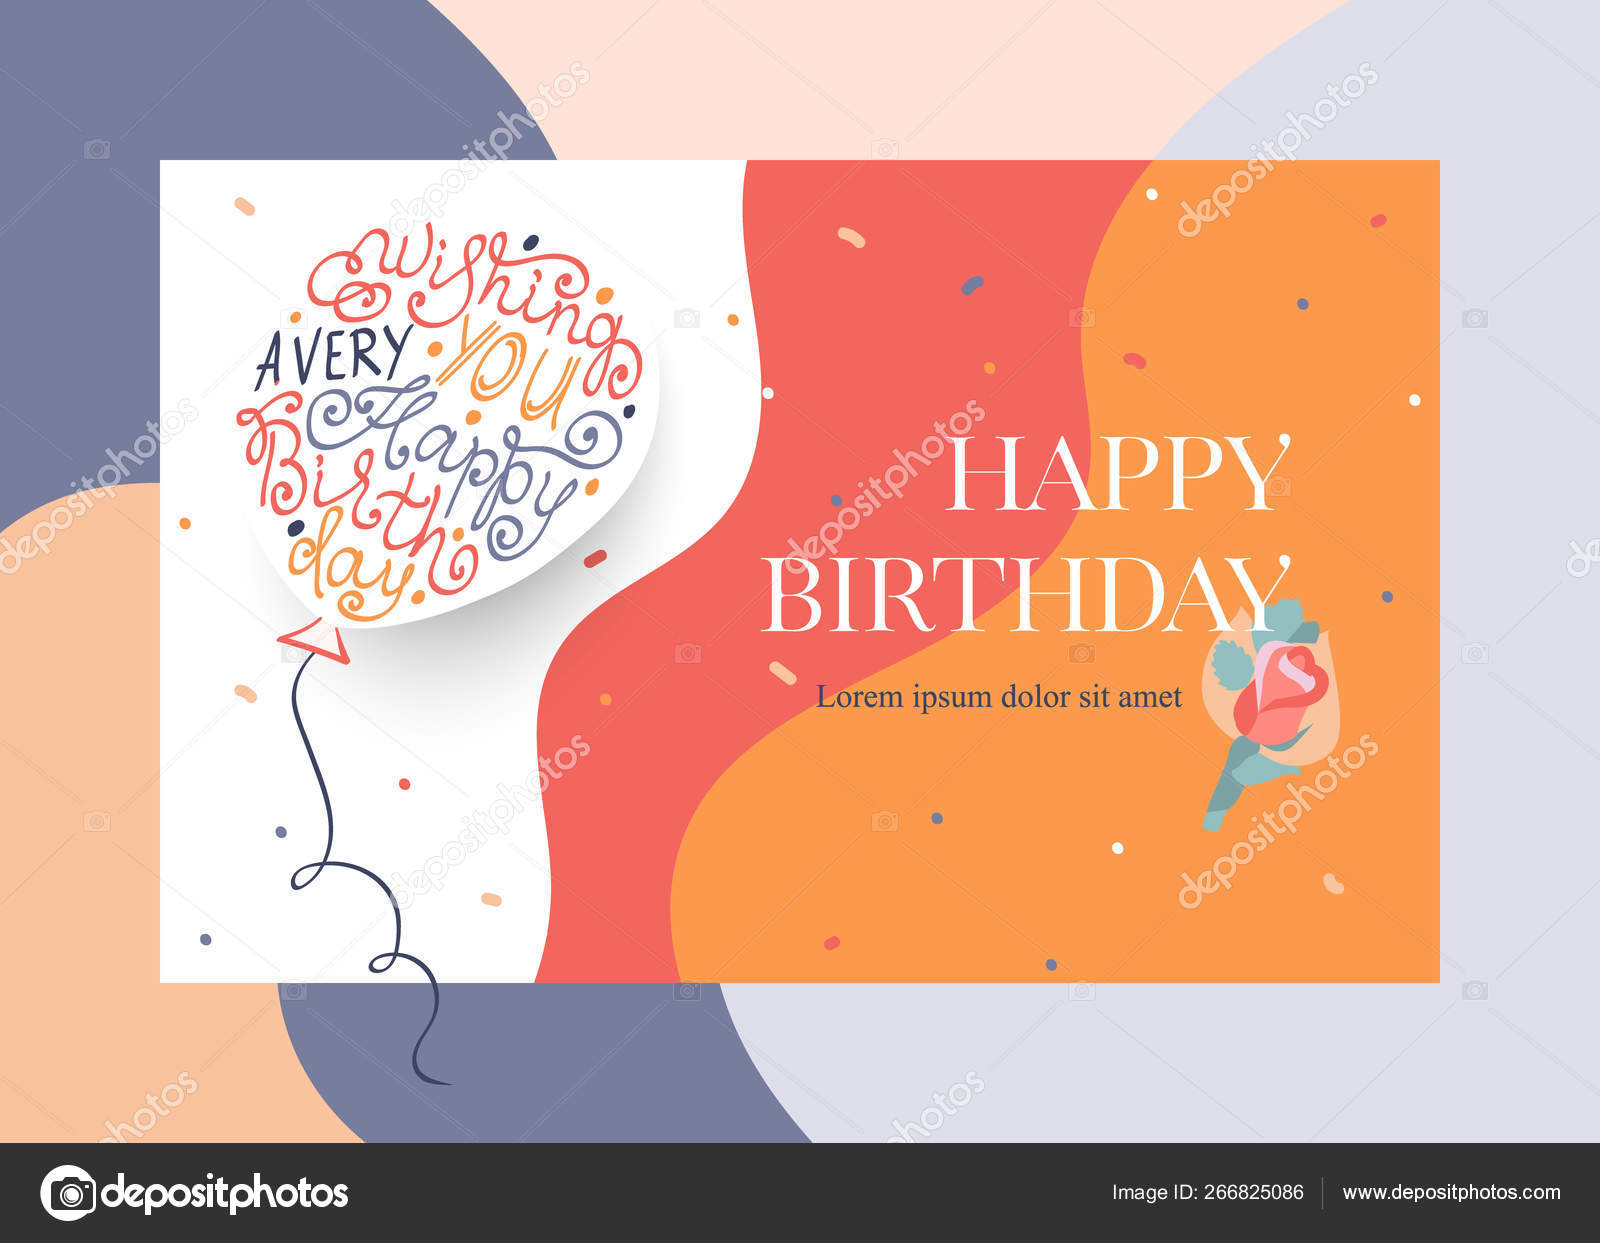 Happy Birthday greeting card design with balloon and